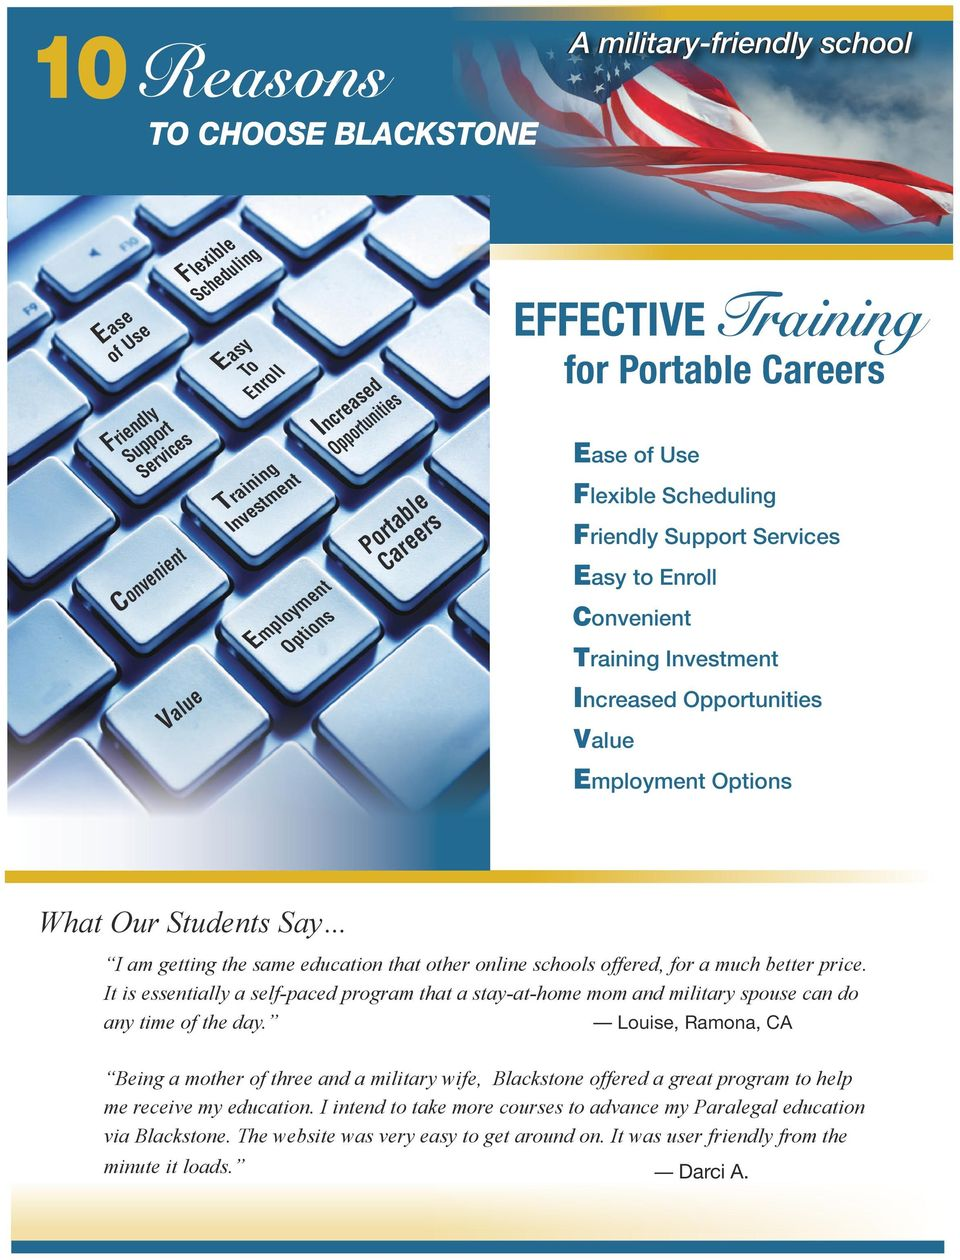 For Military Spouses 4000 Online Training Education Benefits